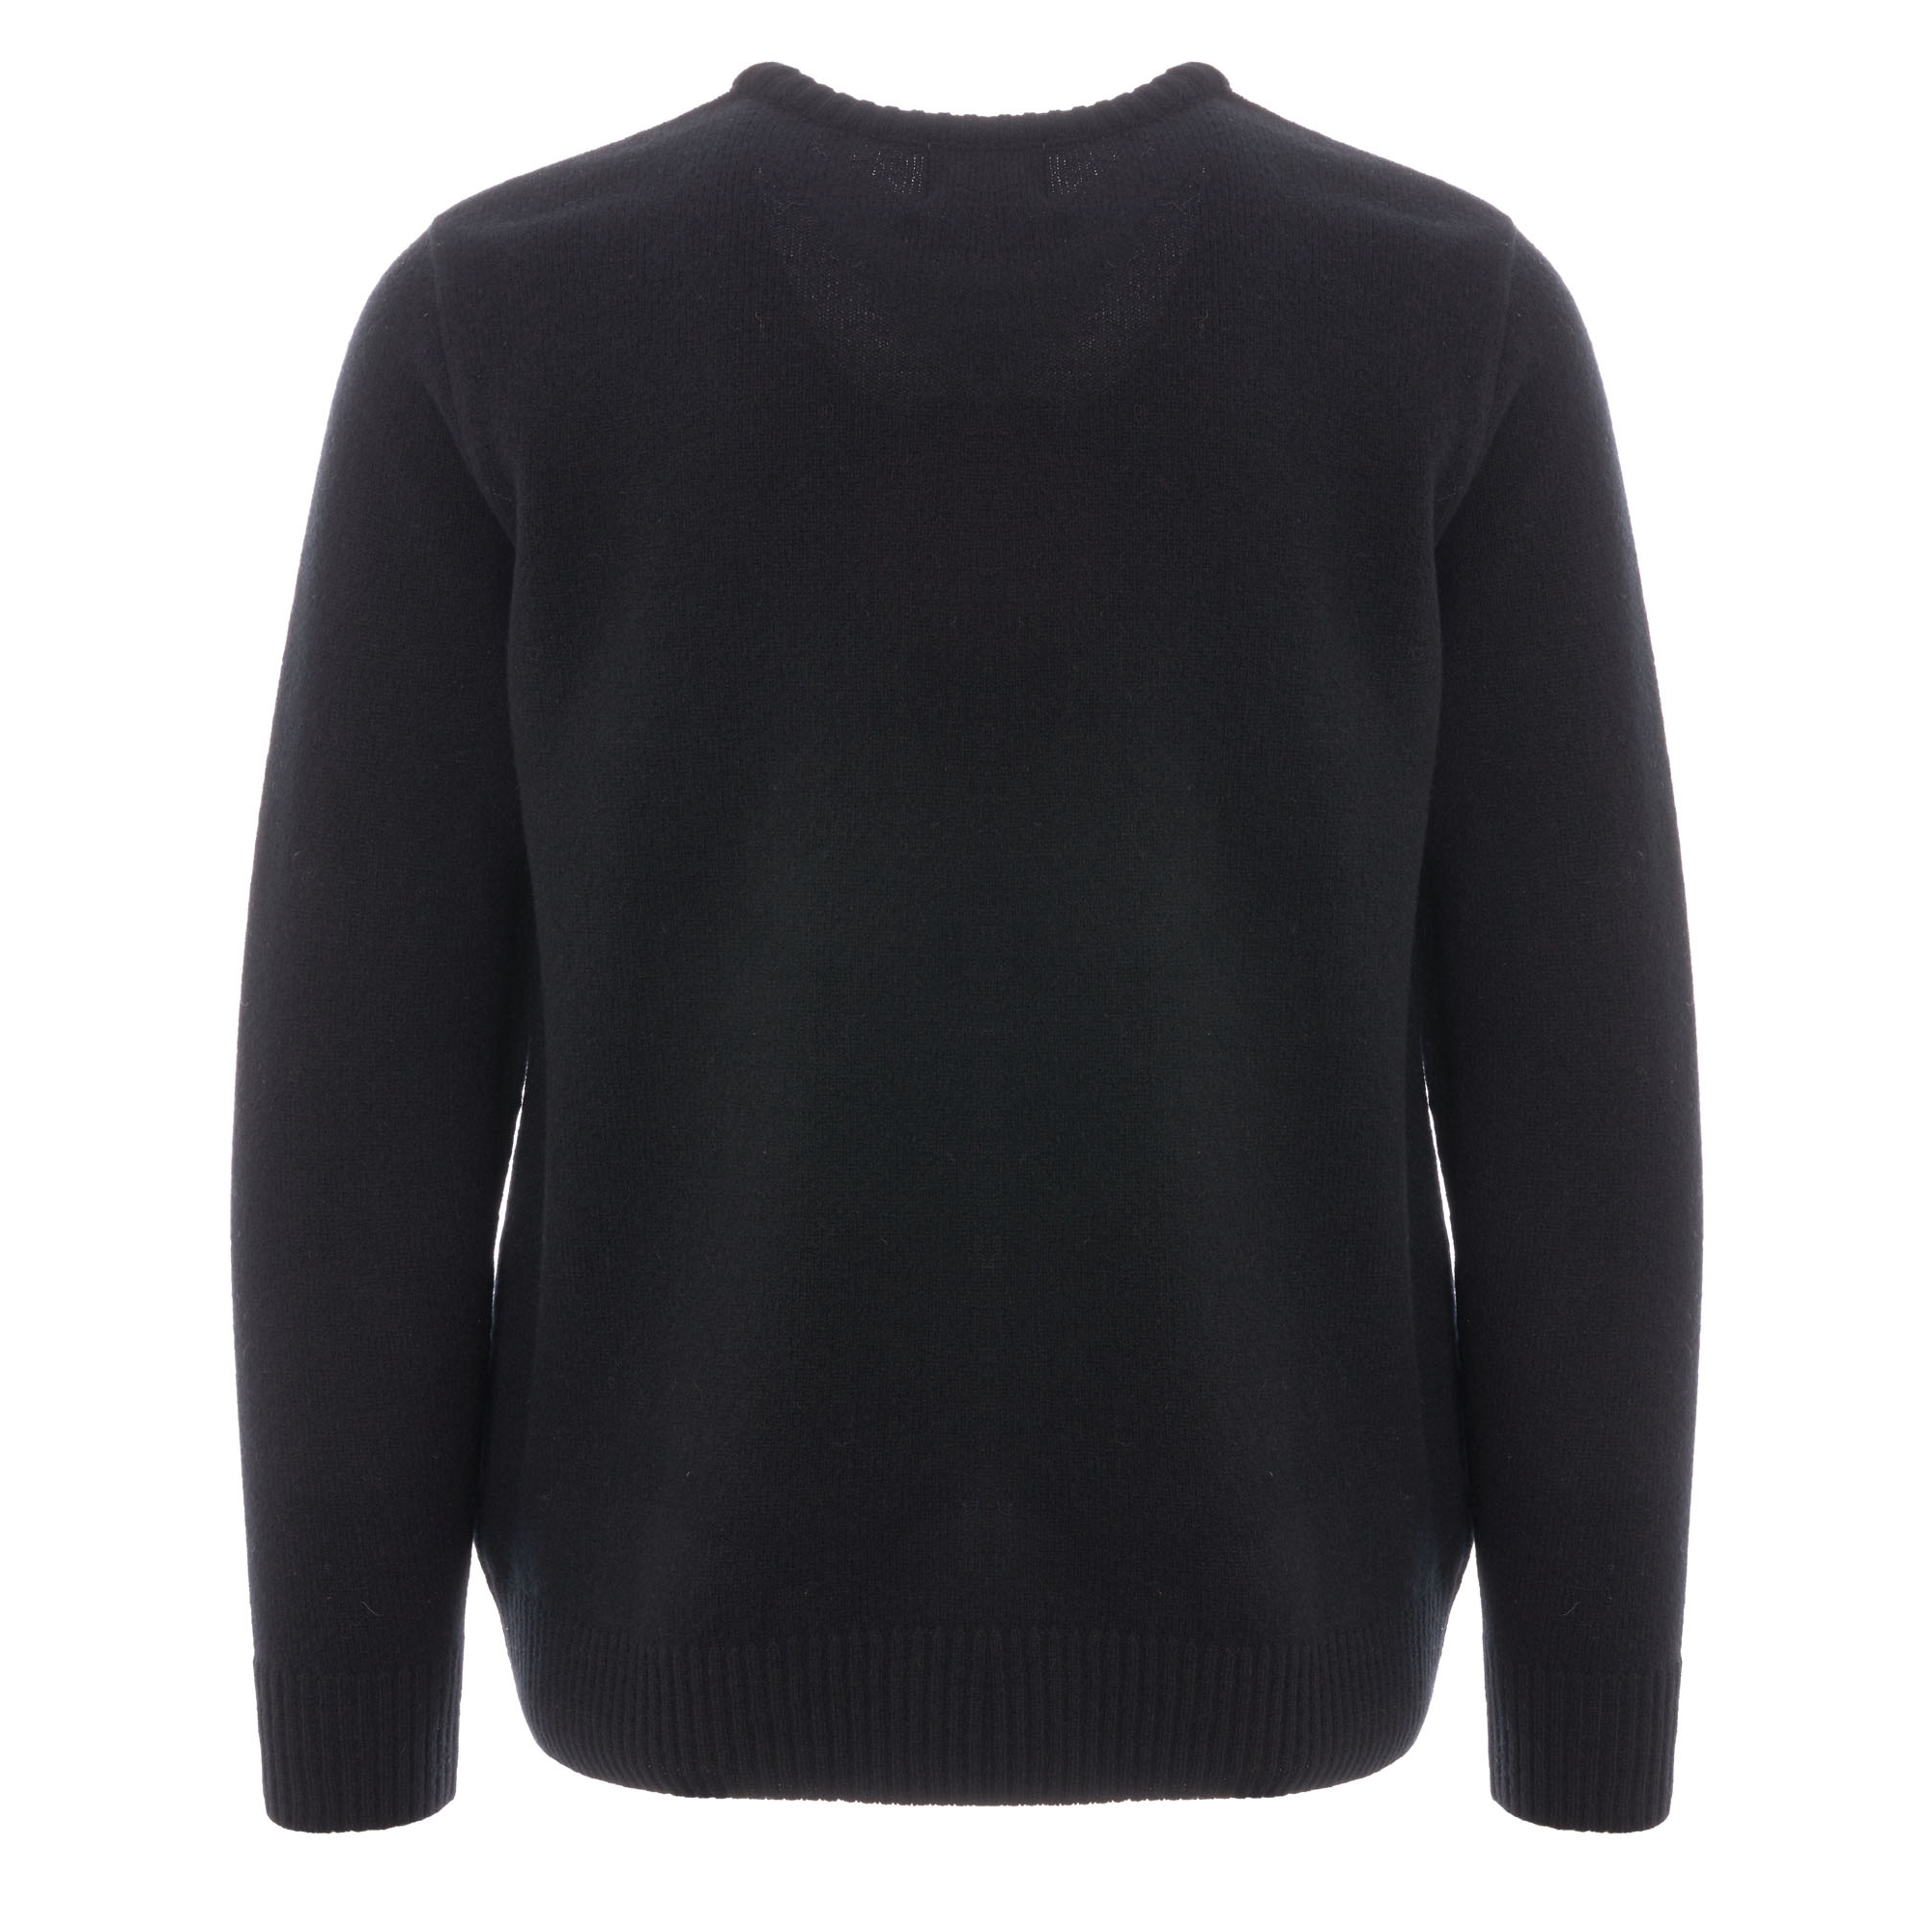 baebf5ce3ac45 Made In England Crew Neck Jumper - Black